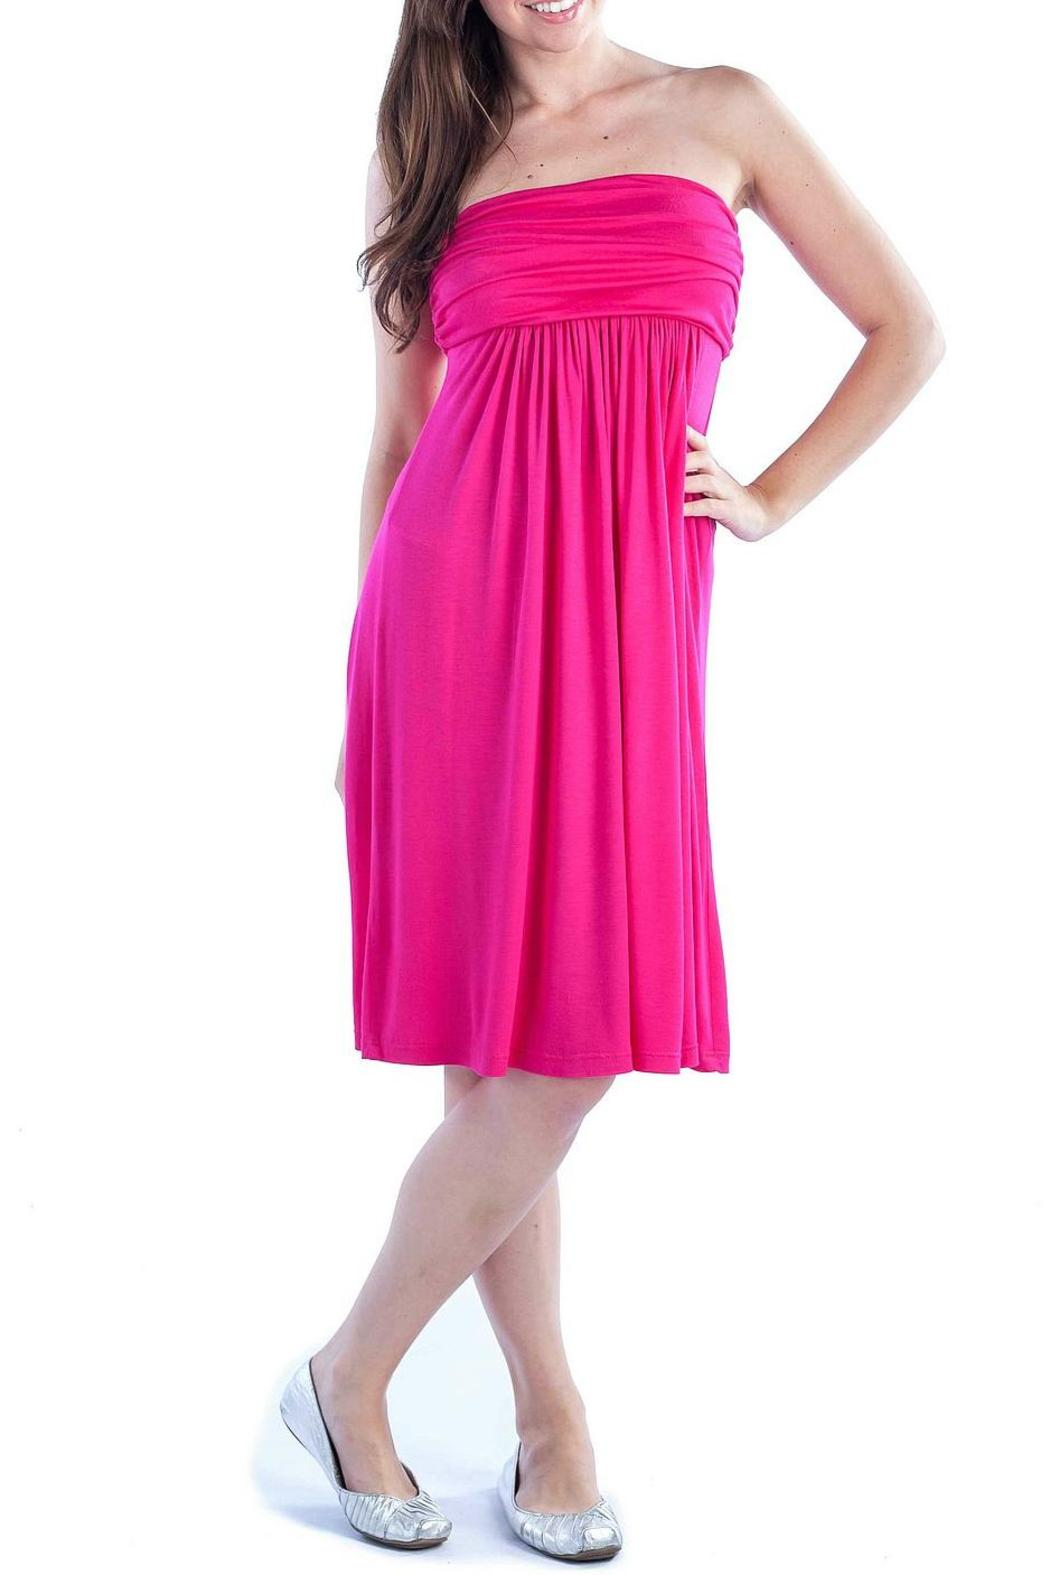 24/7 Comfort Apparel Empire-Tube Strapless Dress - Main Image